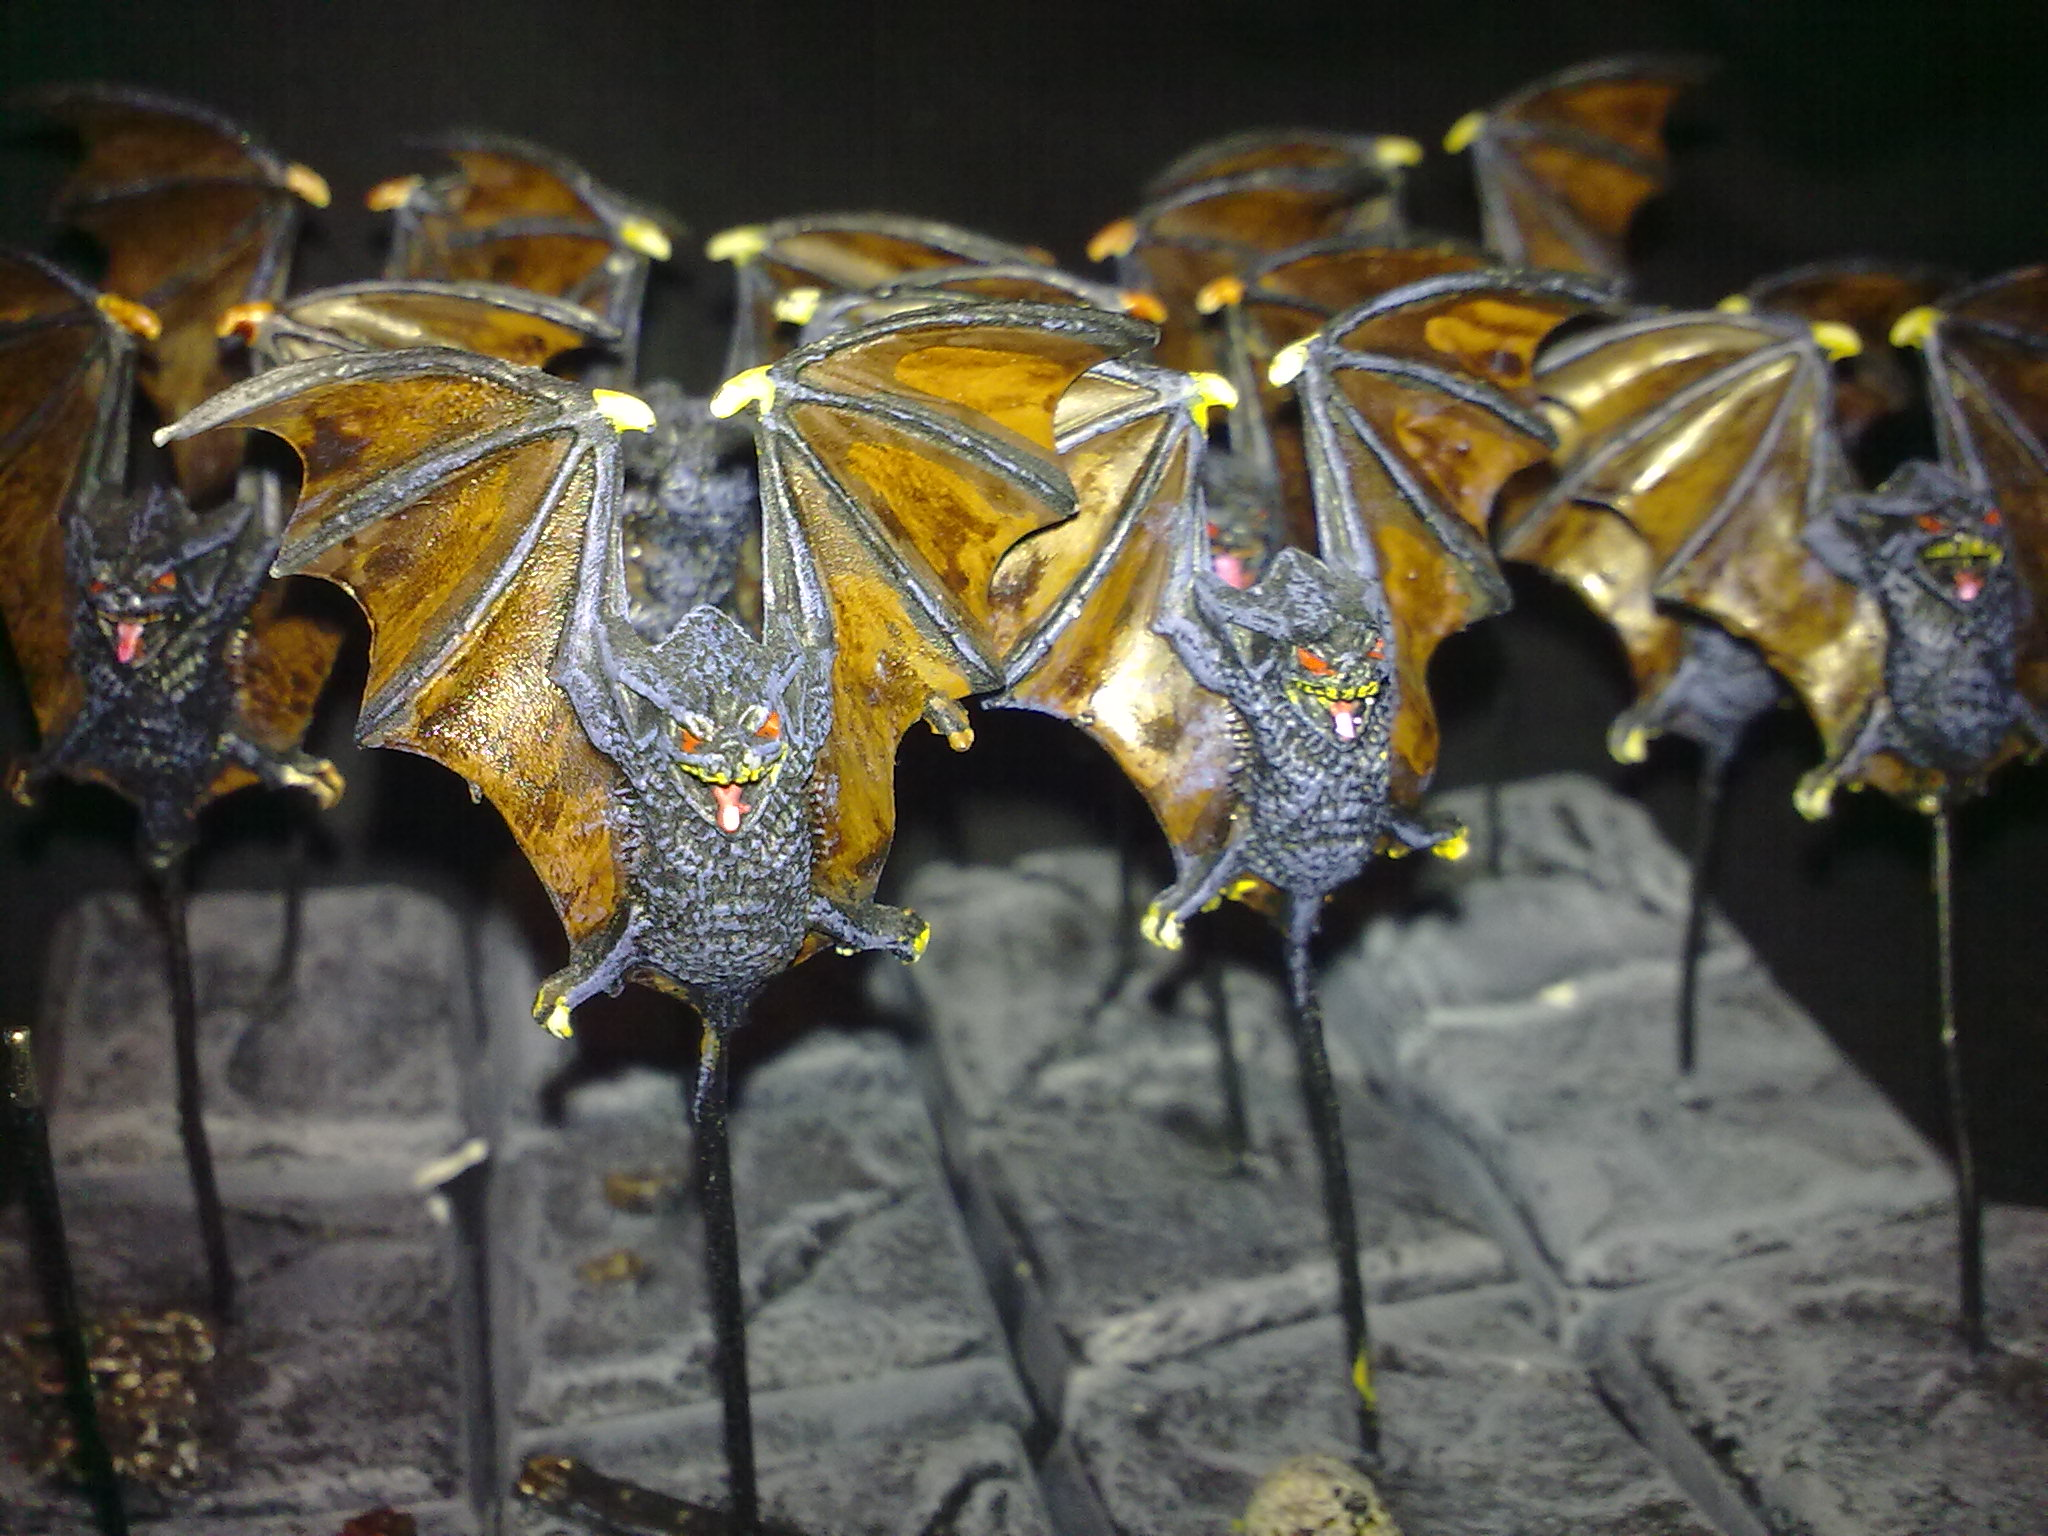 Giant Bats close-up, painted by Questing Knight